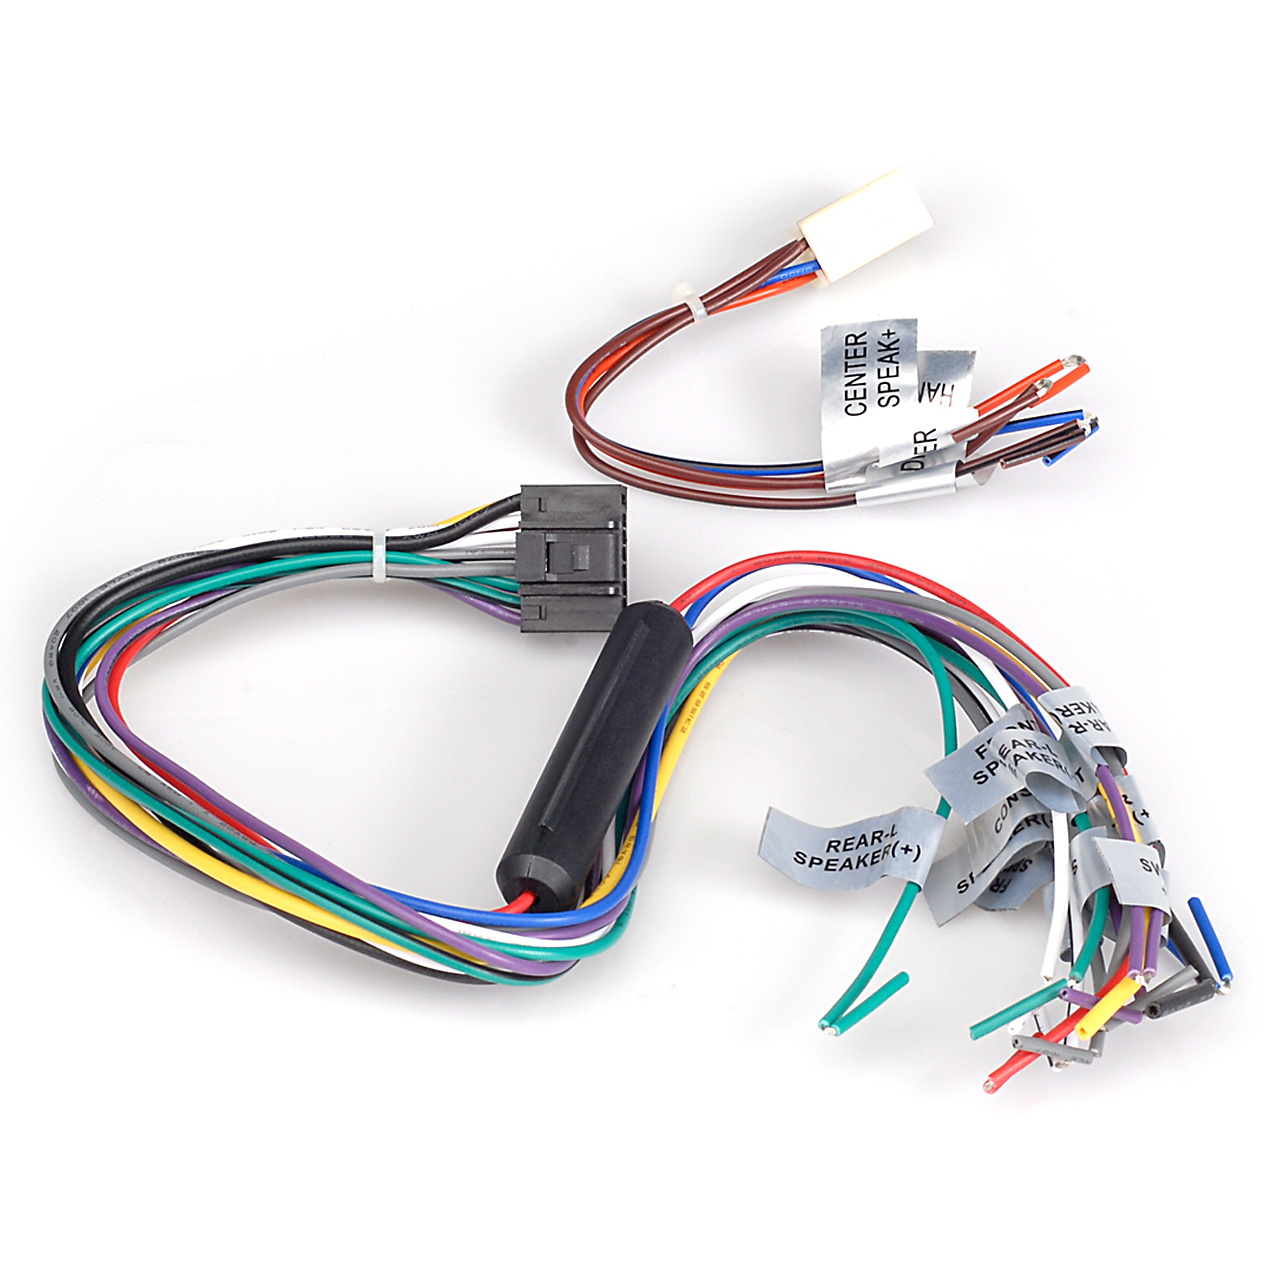 magnadyne m3 har m3 lcd m4 lcd radio power speaker harness Wire Harness Cable